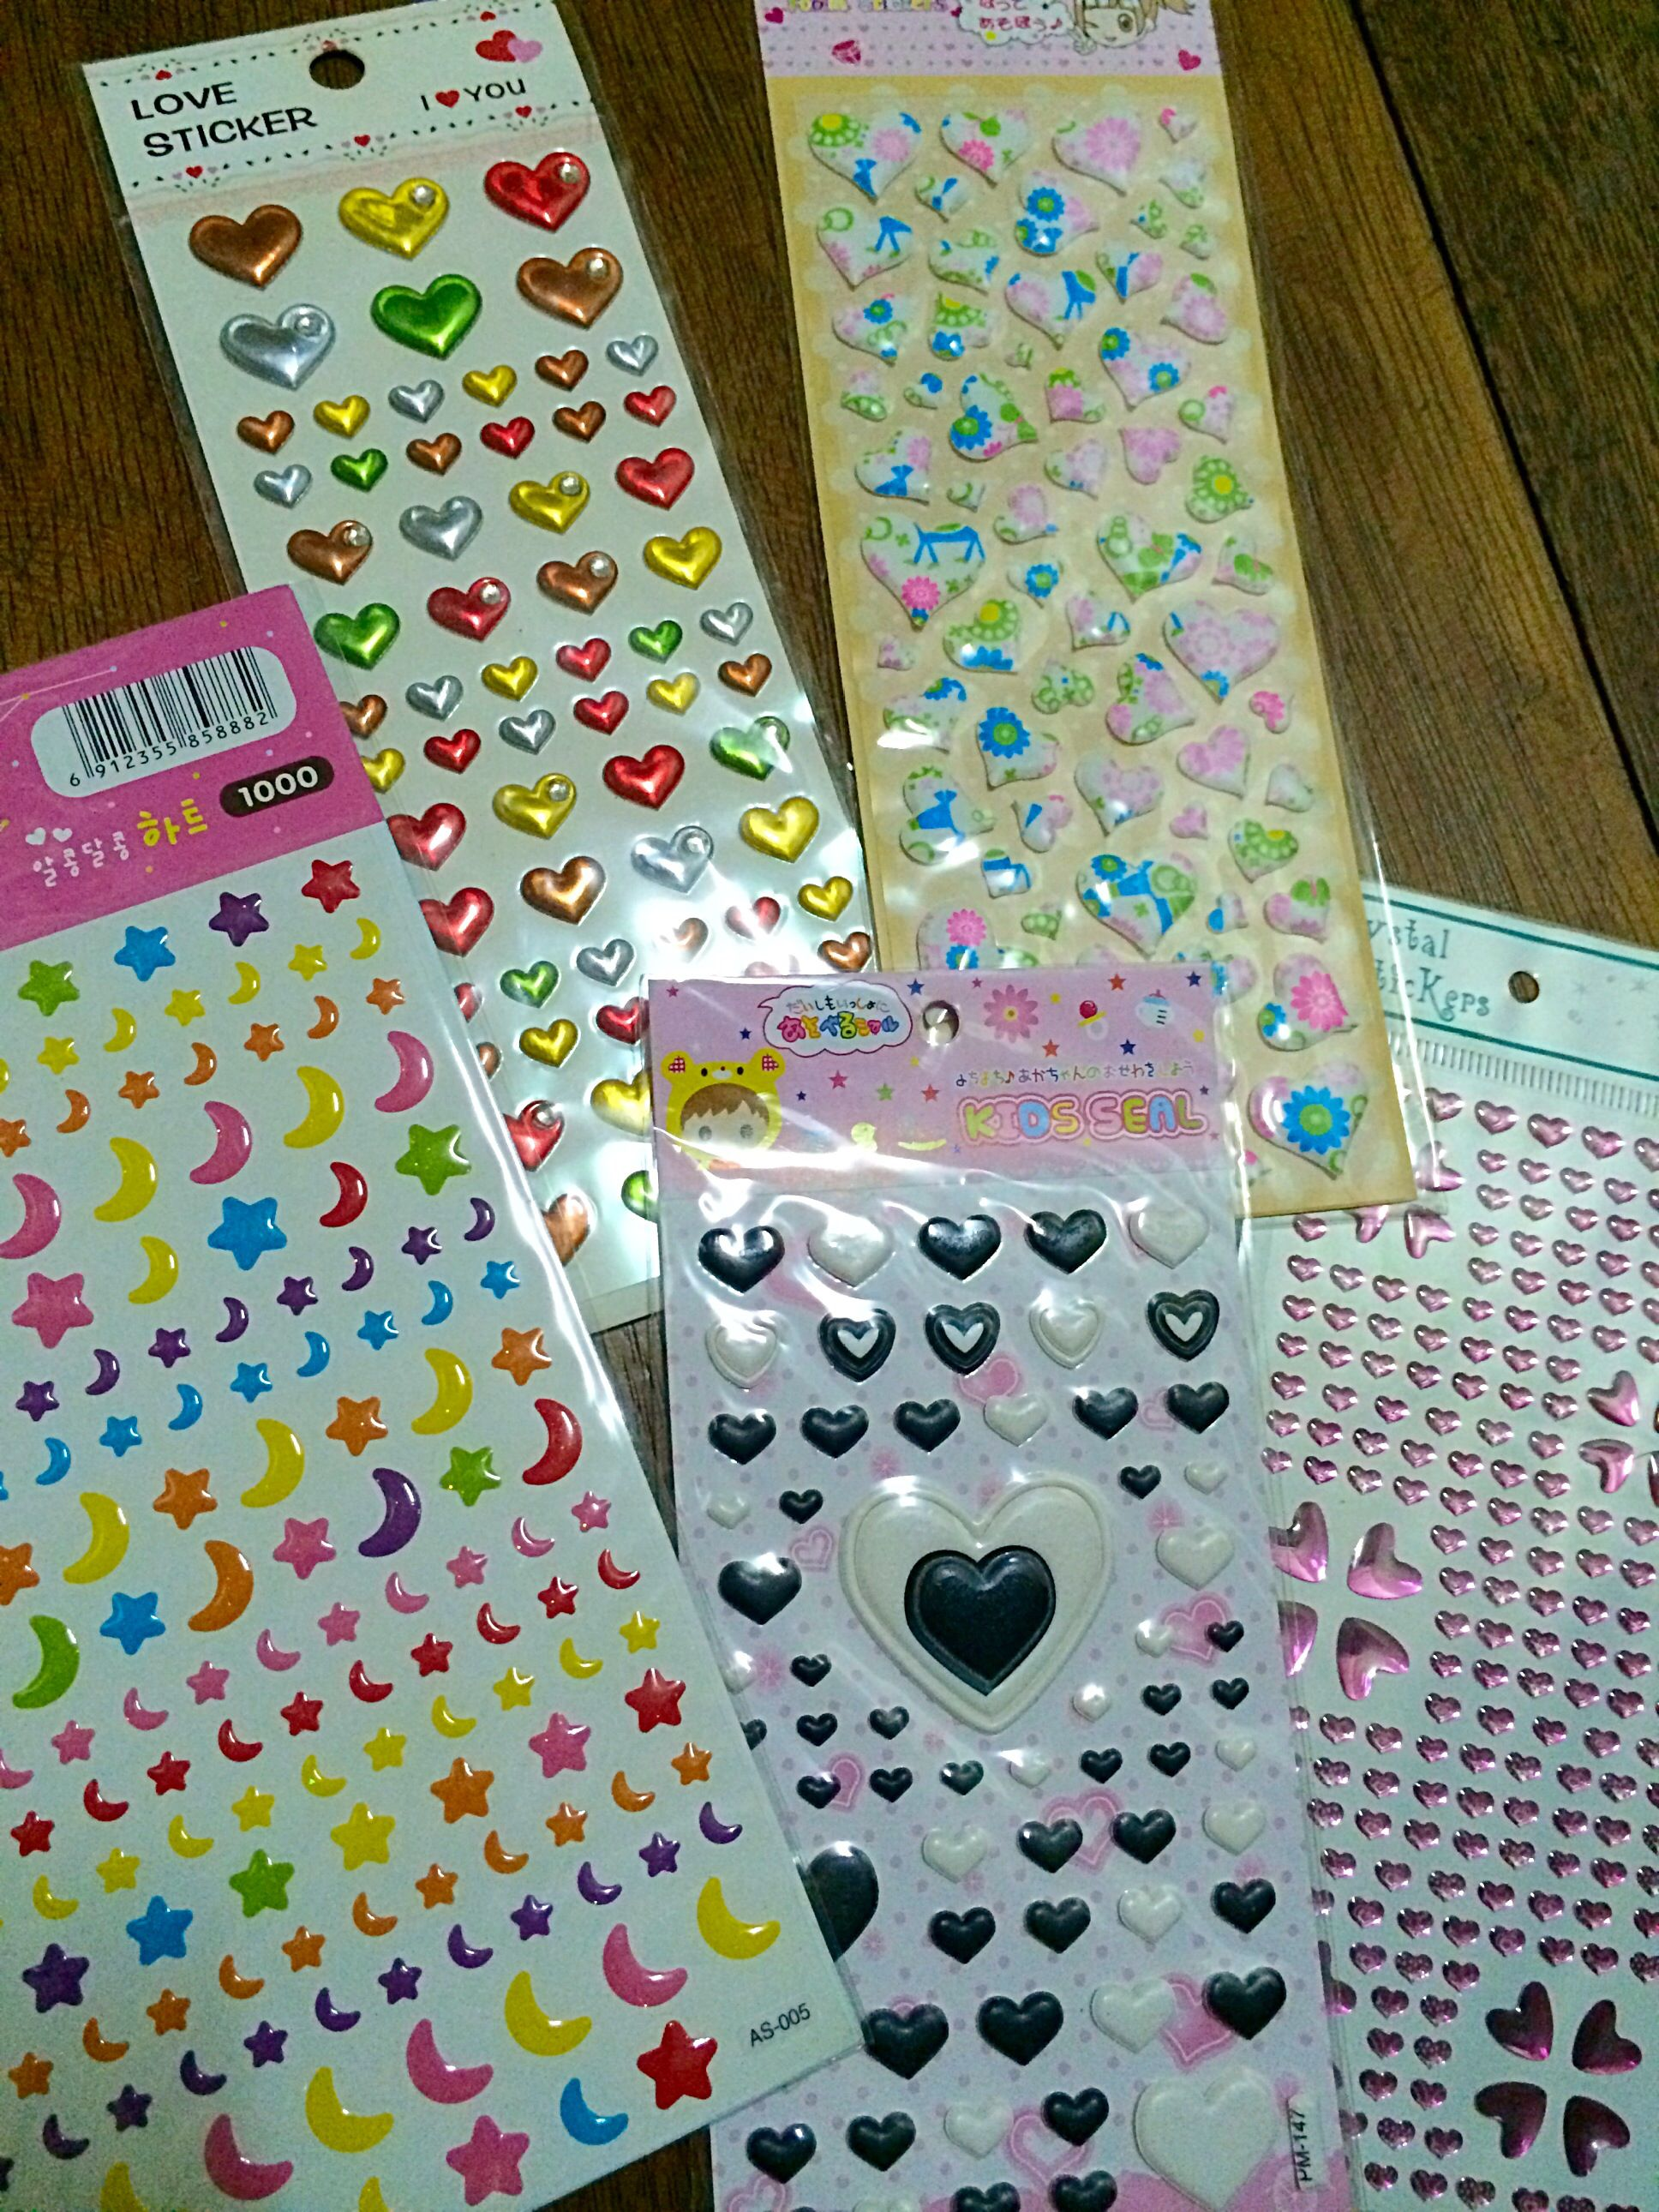 Puffy Stickers Php For Sheets Divisoria Finds July - Wall decals divisoria